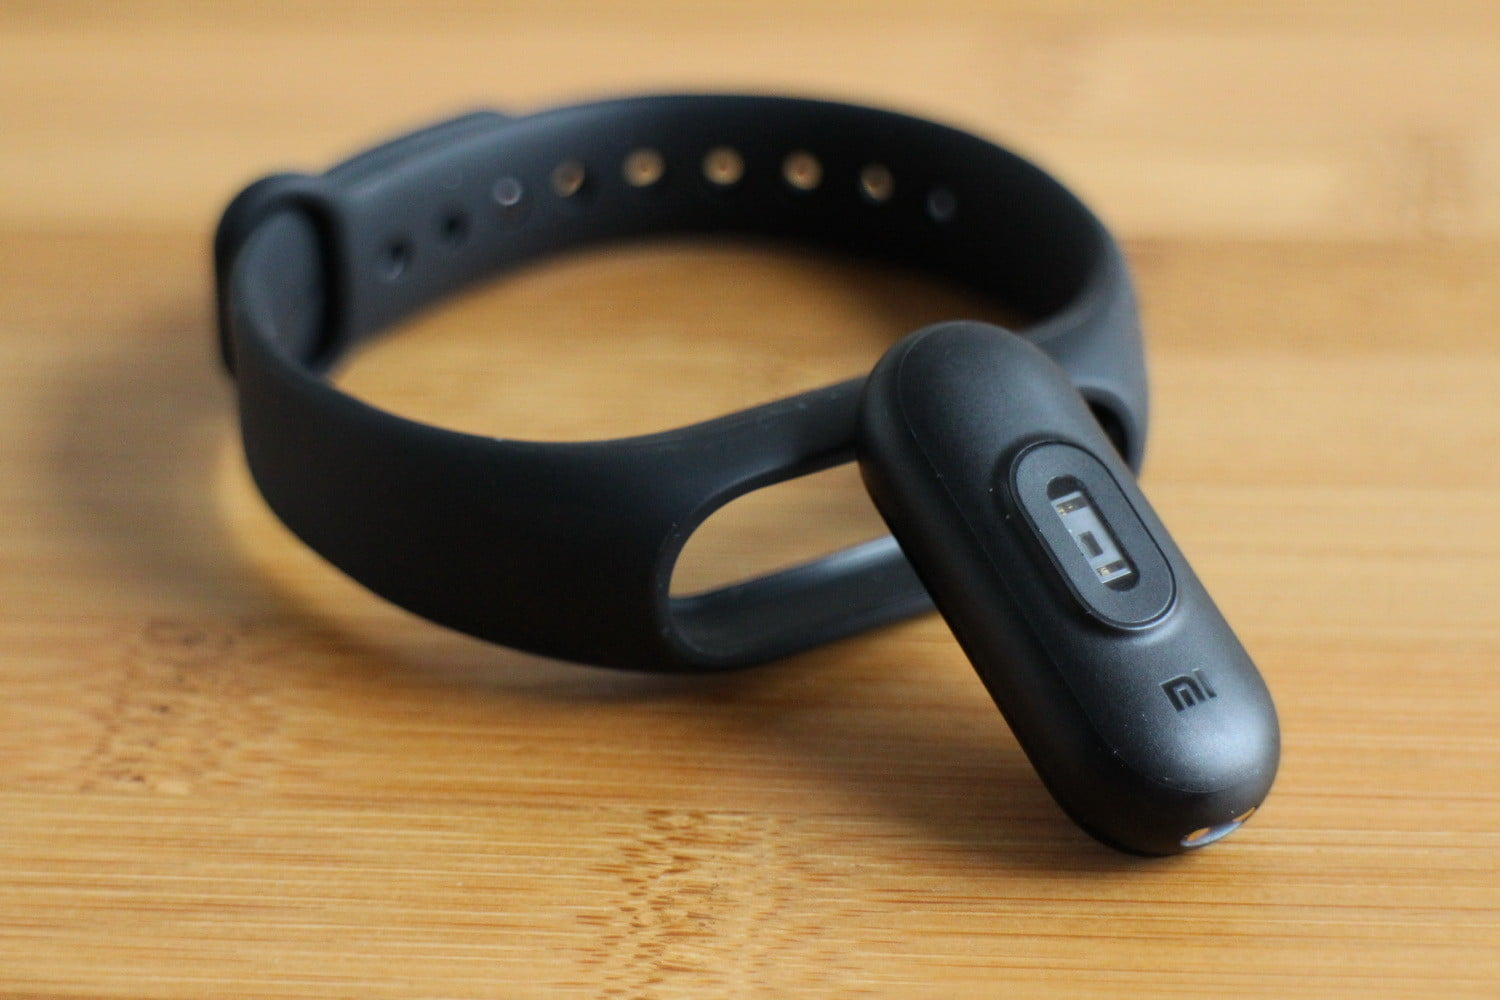 xiaomi mi band 2 review digital trends. Black Bedroom Furniture Sets. Home Design Ideas